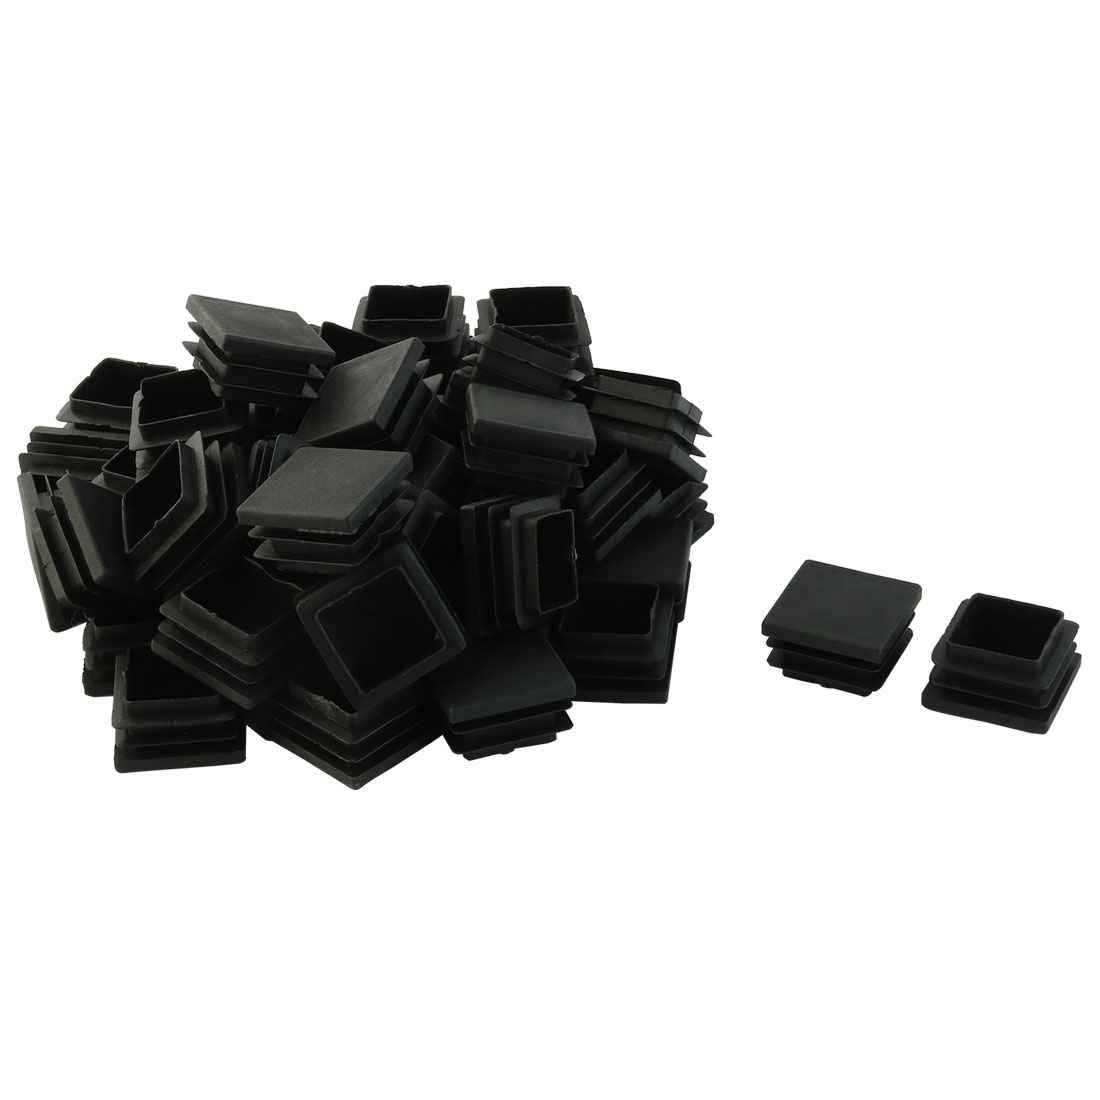 Plastic Square Design Tube Insert End Blanking Cover Cap Black 32 x 32mm 50pcs